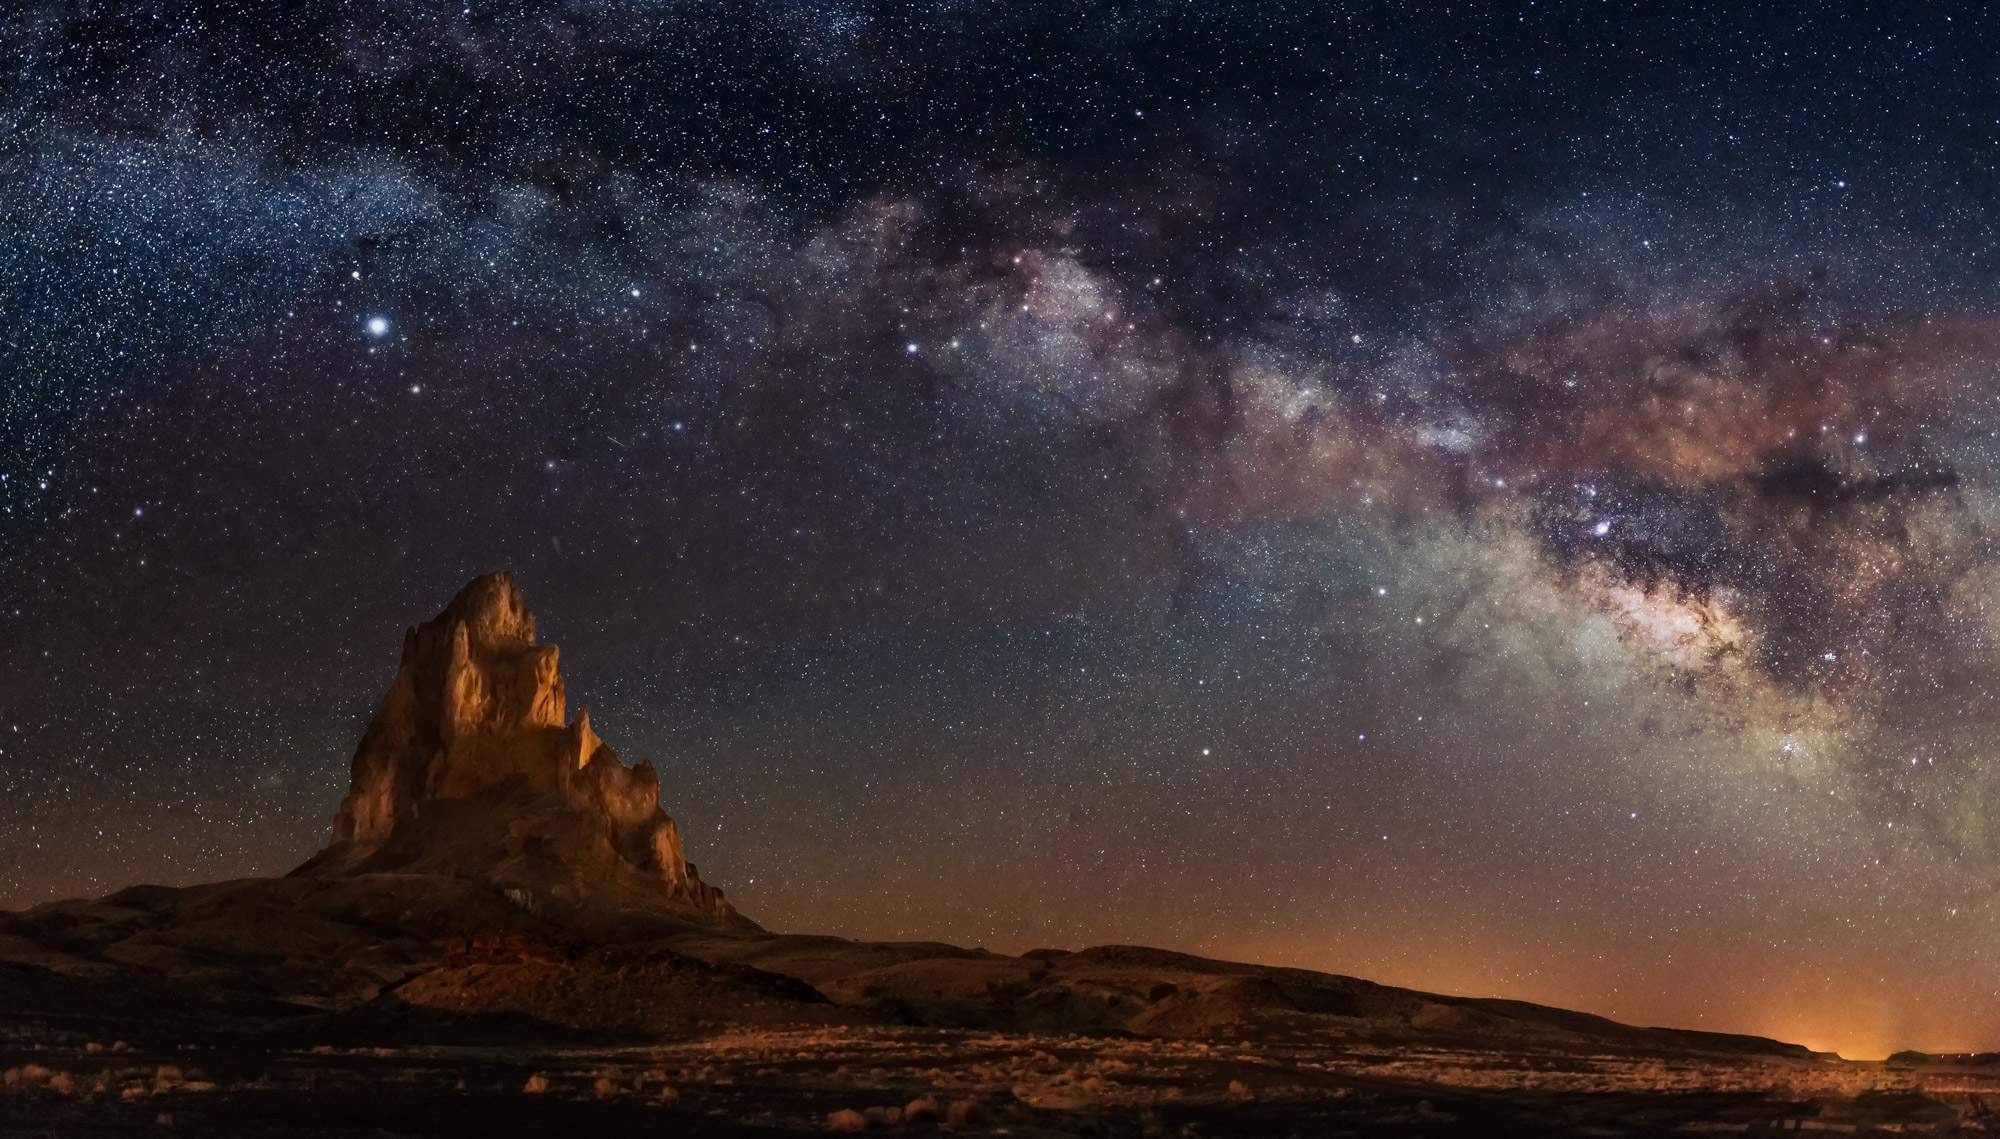 Arizona, Utah, Milky Way, Agathla Peak